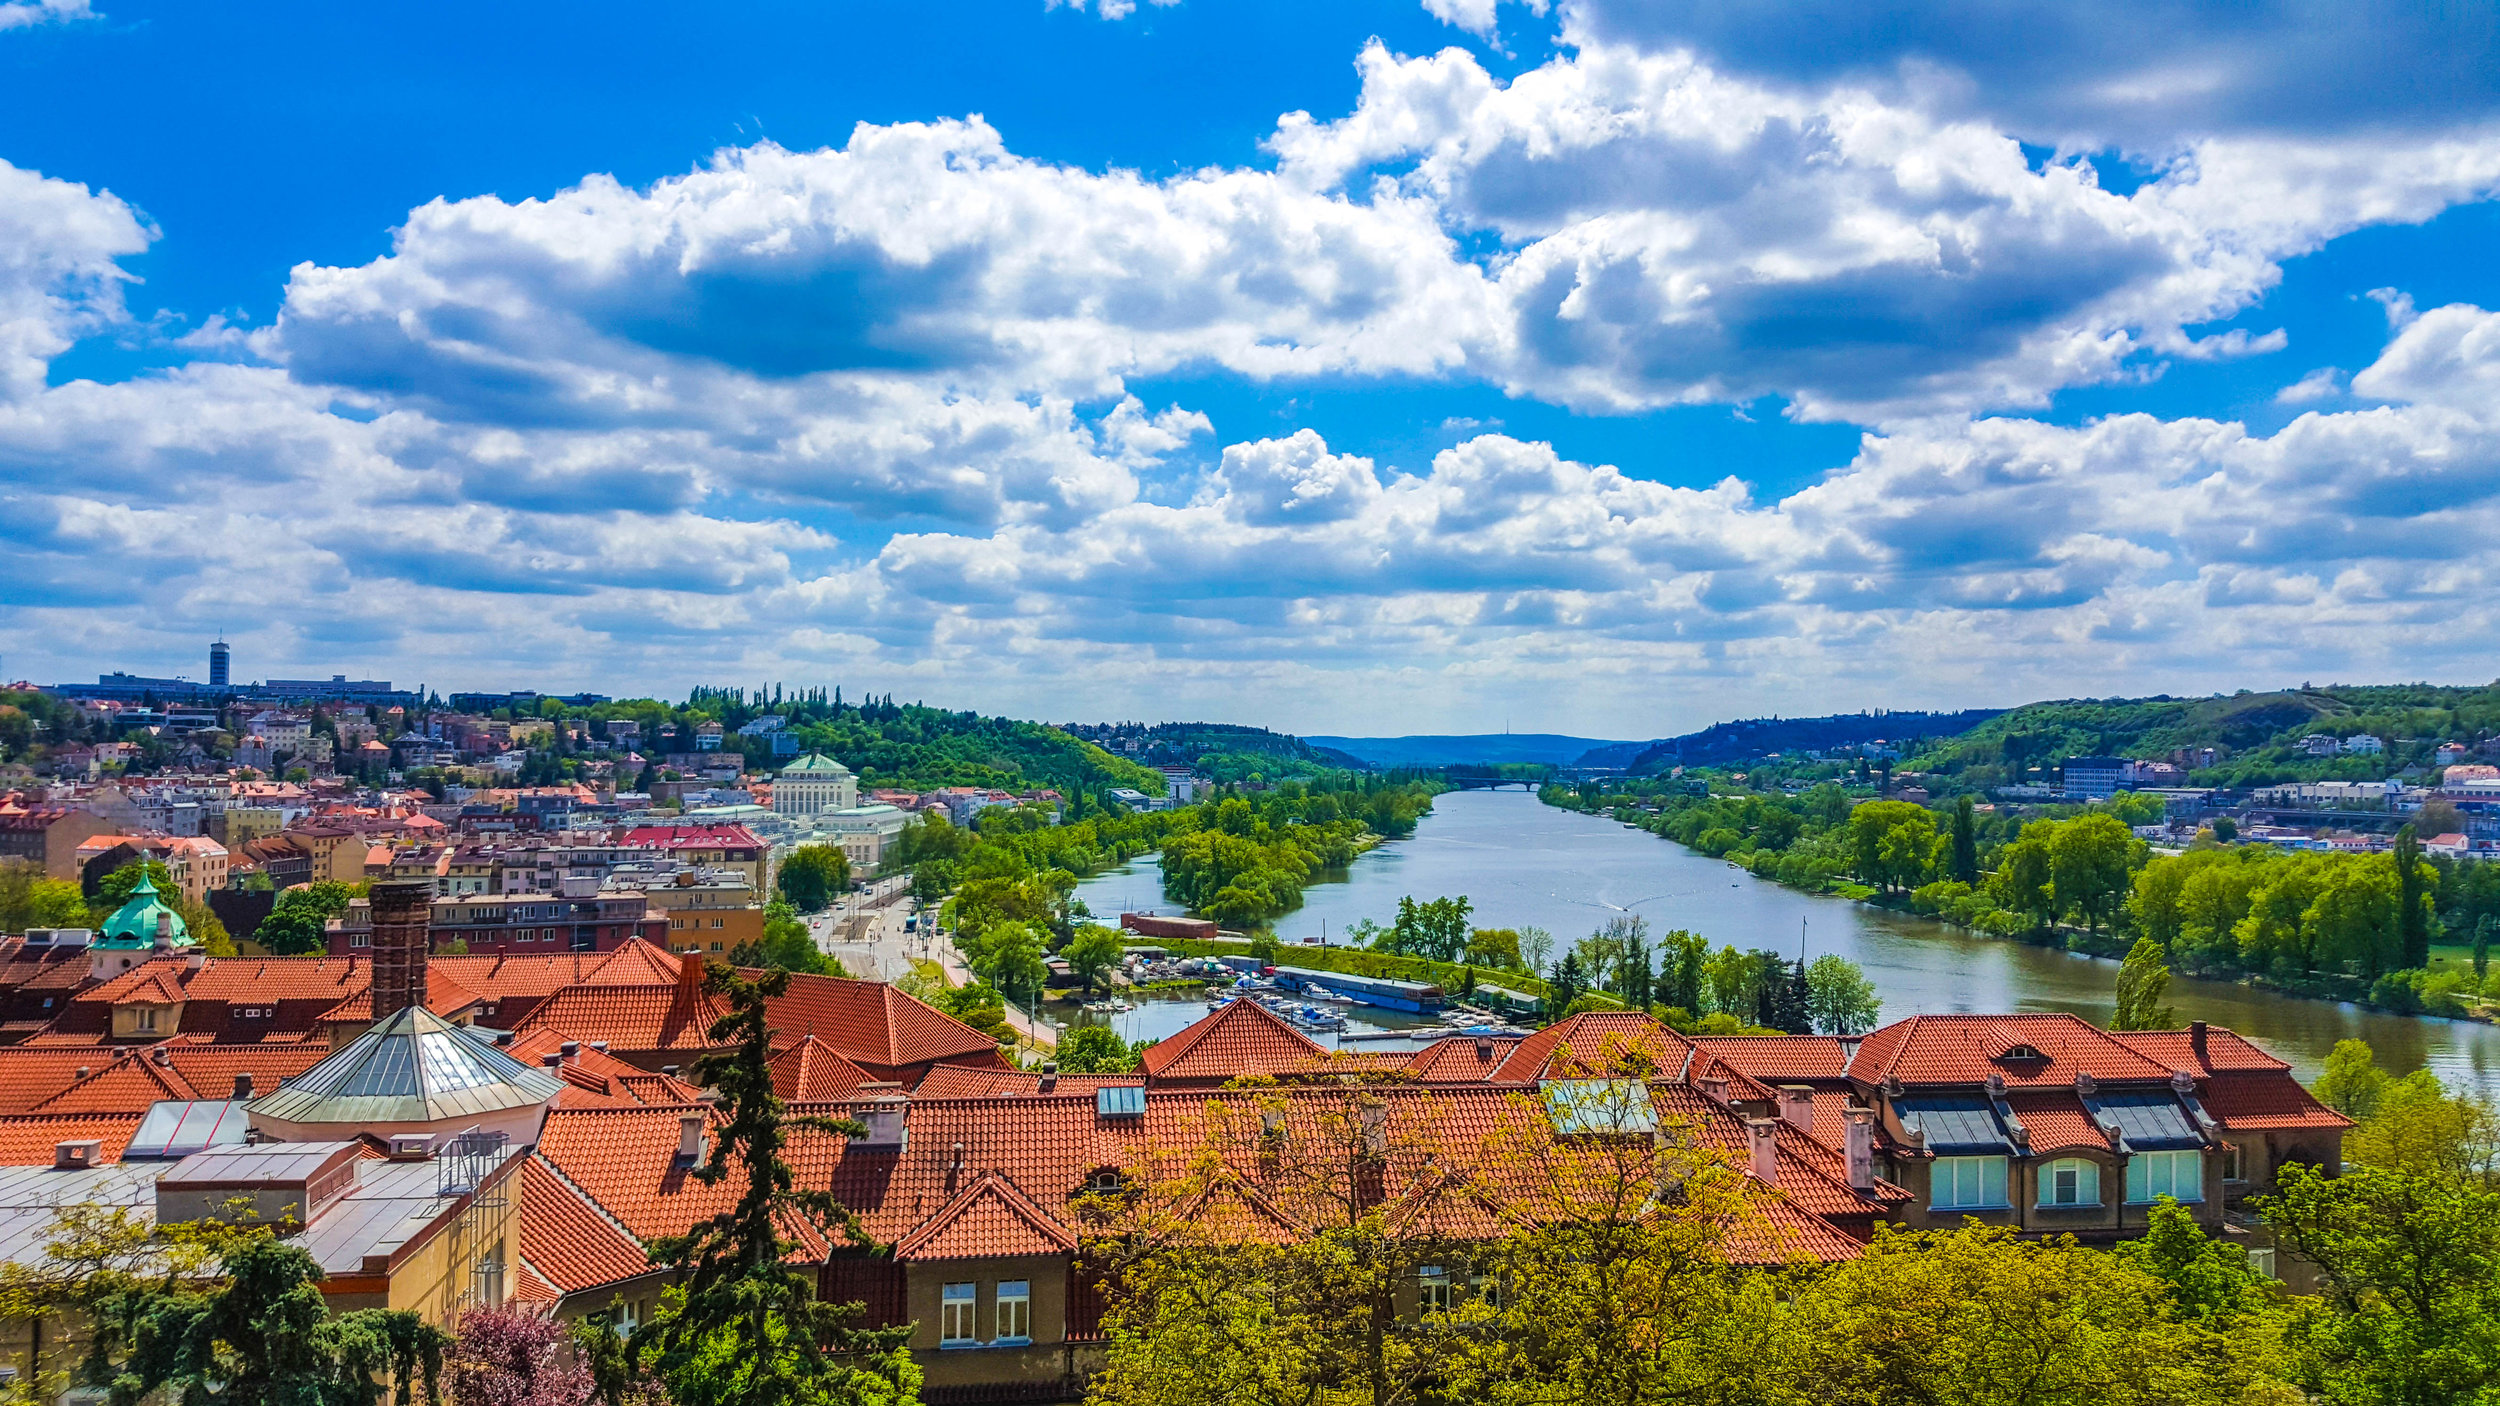 The view of Vltava River from Vyšehrad